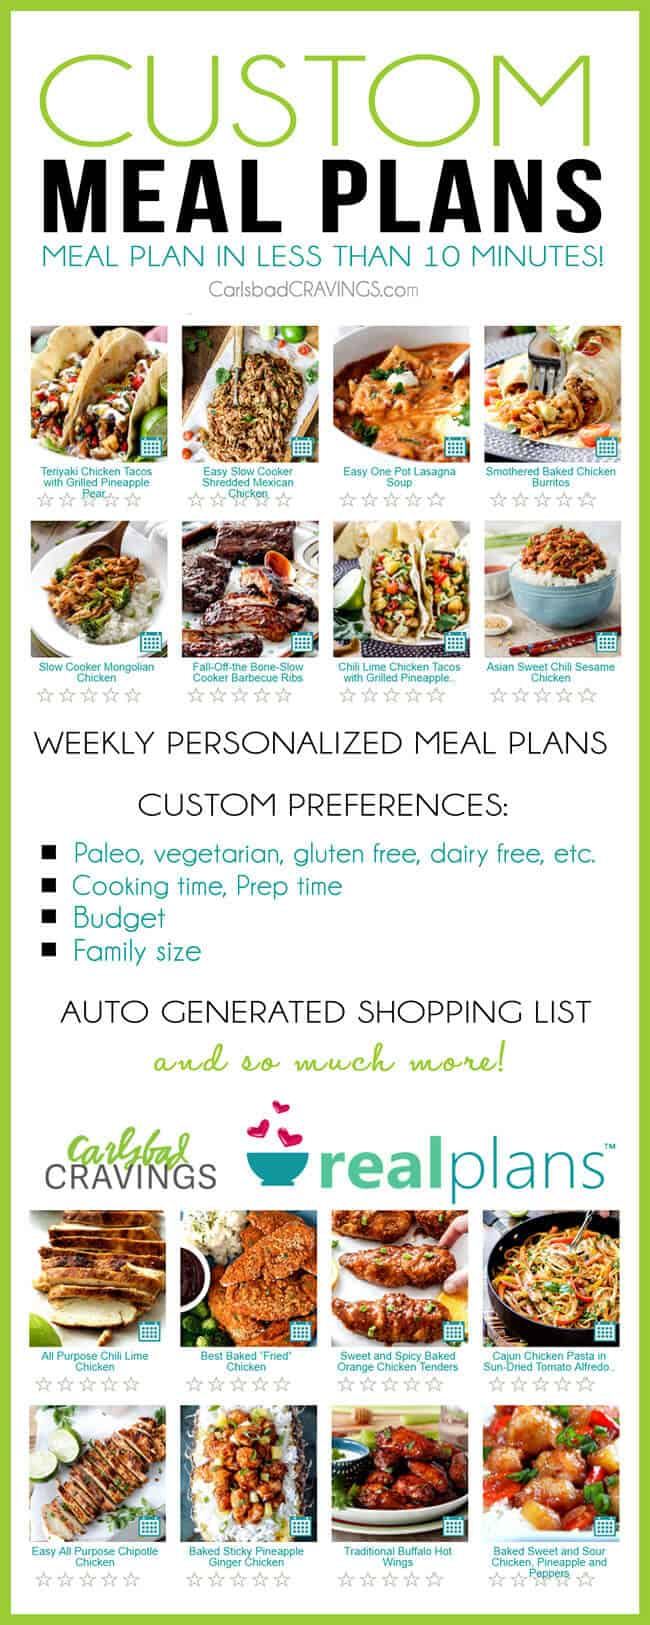 Simplify your life with real plans meal plans carlsbad cravings i was blown away by this online meal plan so easy customizable and took forumfinder Image collections